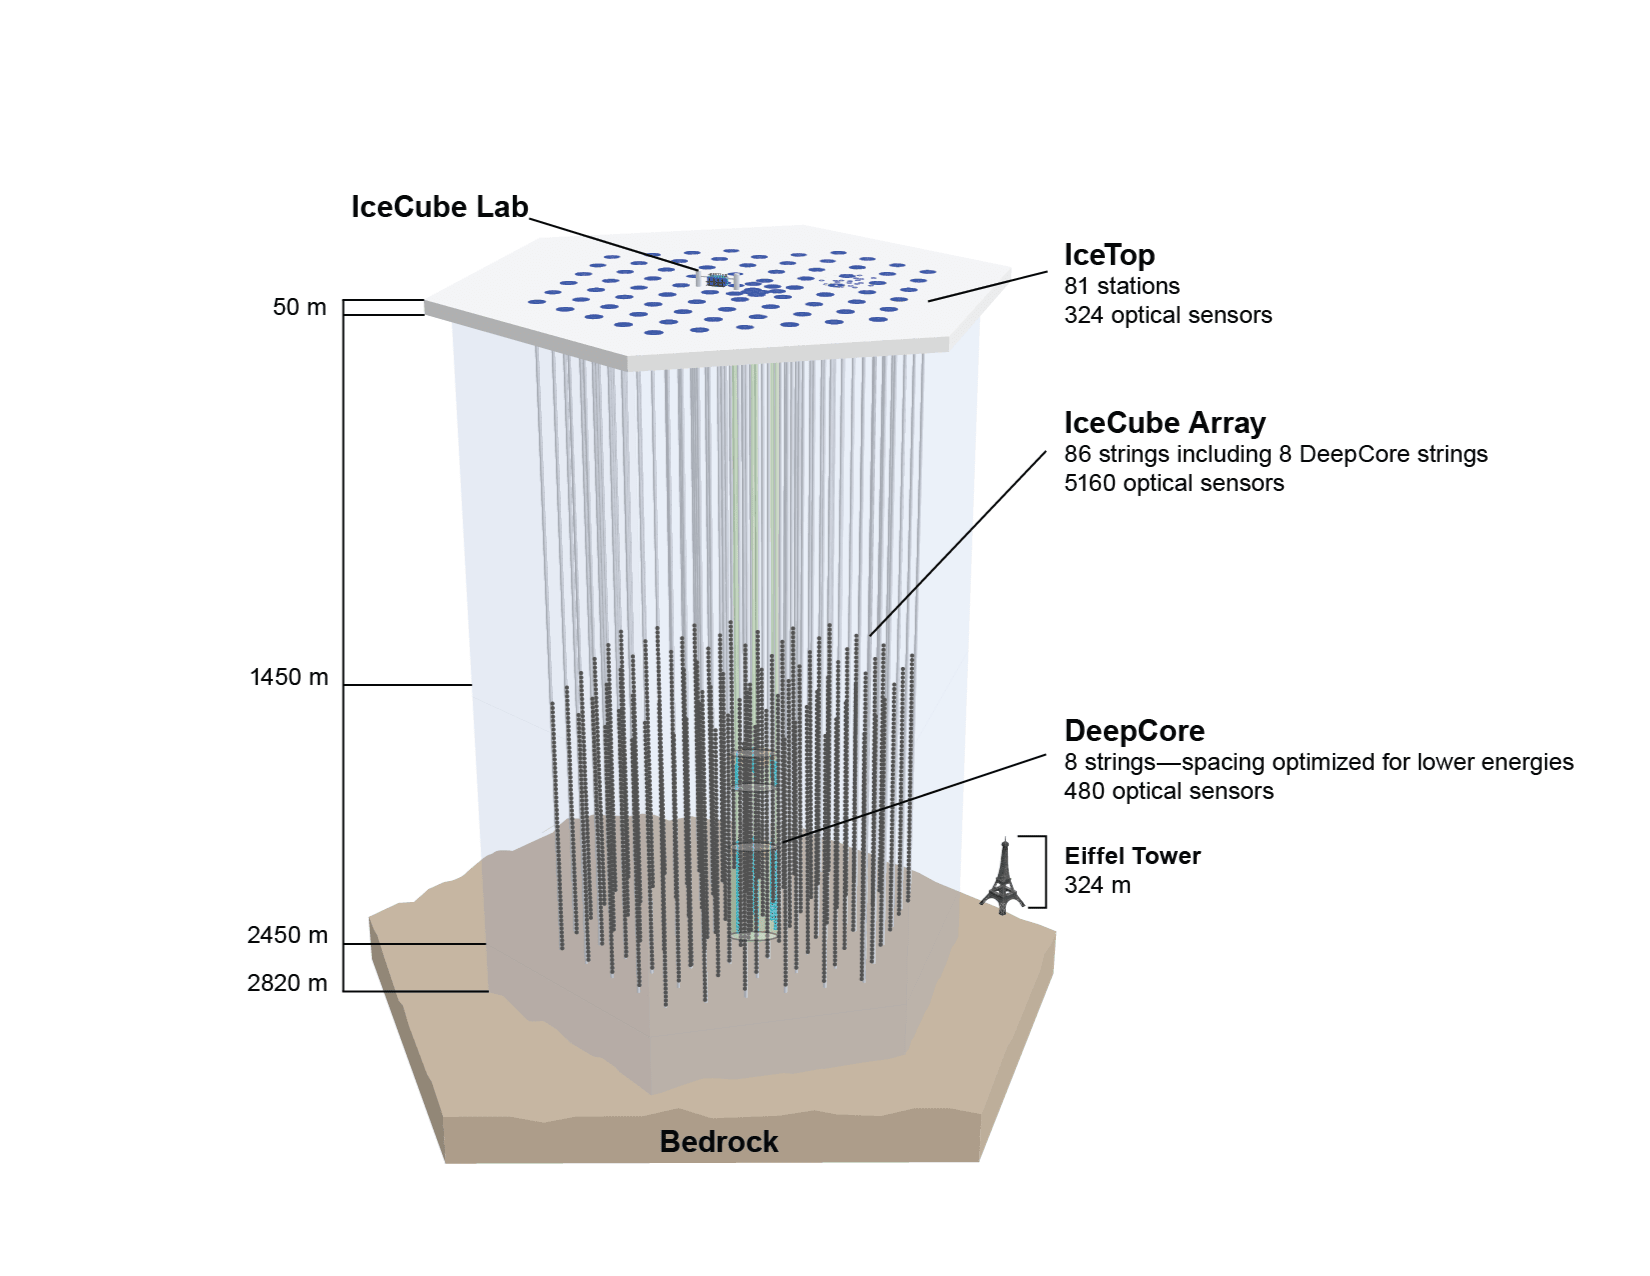 A schematic of the in-ice portion of IceCube, which includes 86 strings holding 5,160 light sensors arranged in a three-dimensional hexagonal grid.